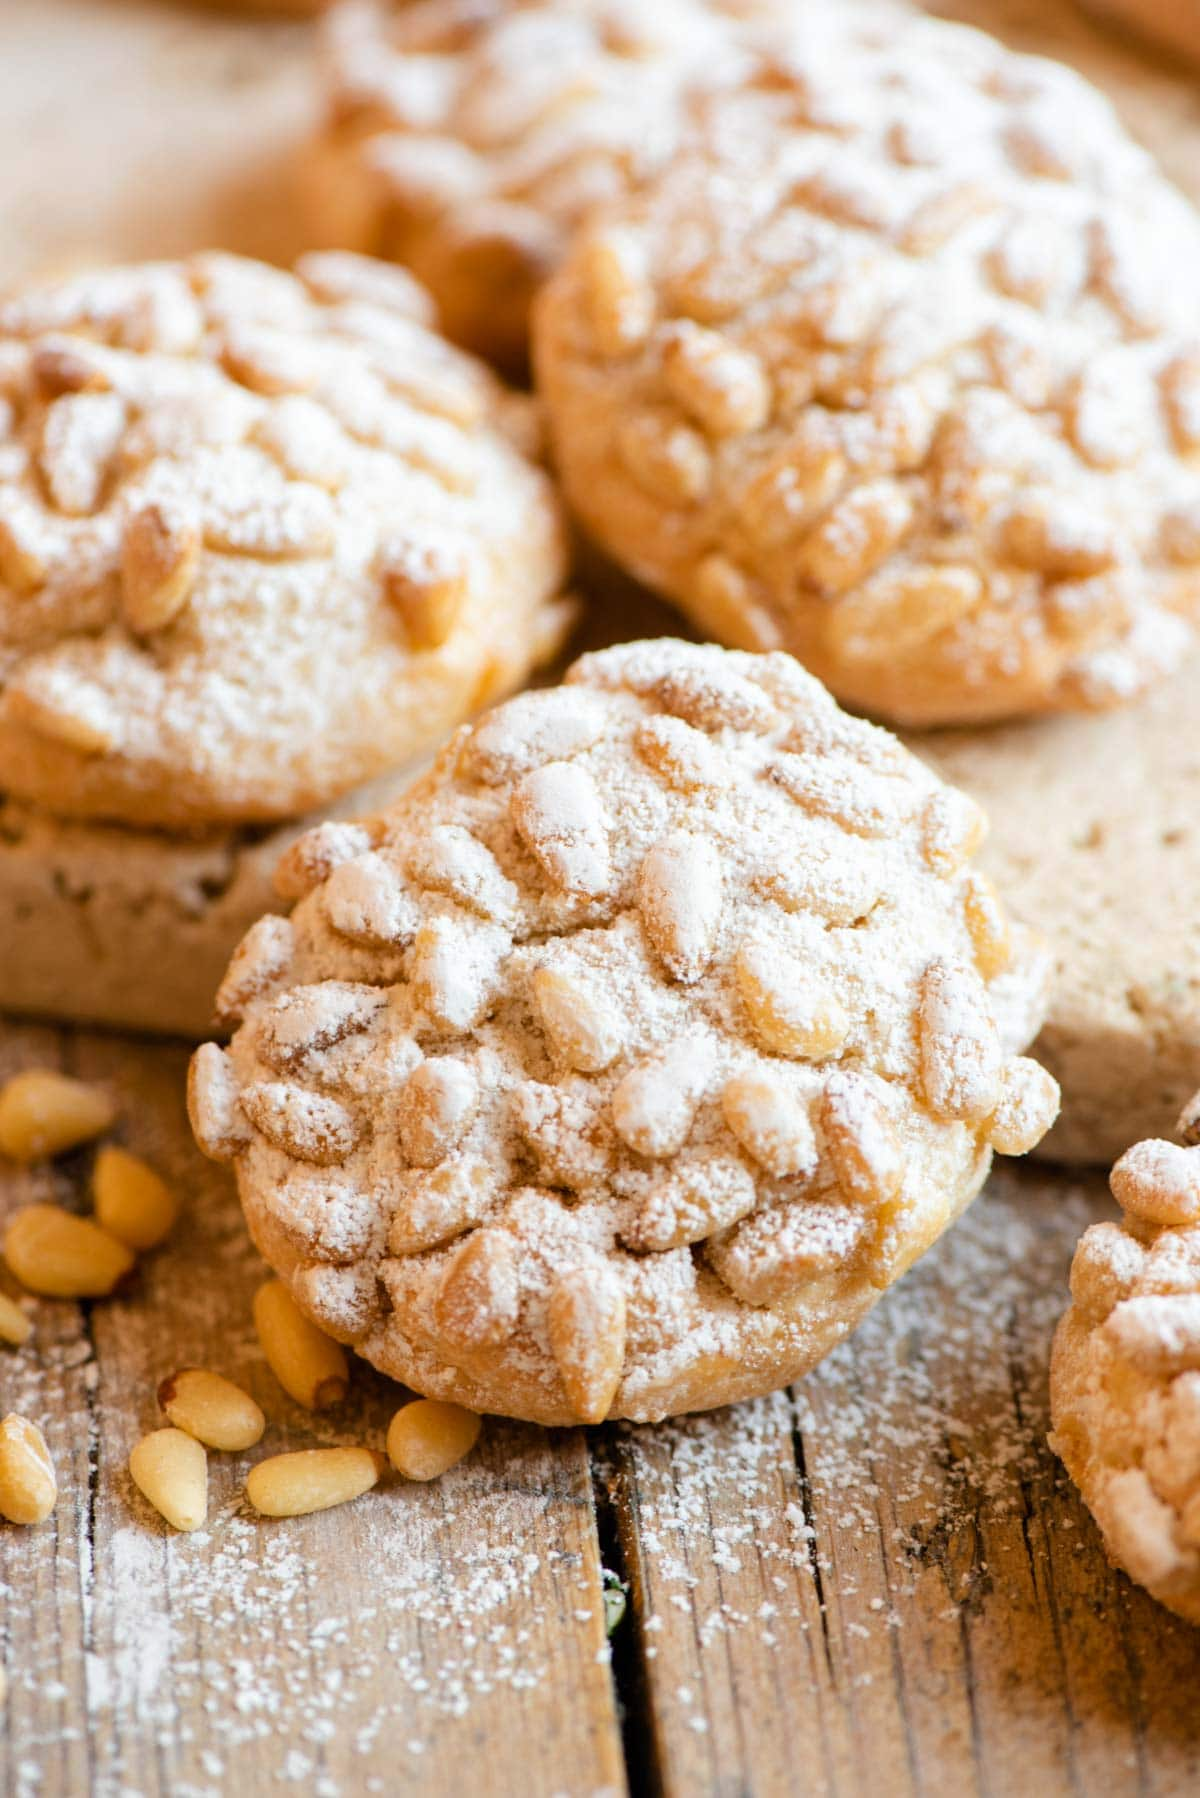 A close up of an Italian cookie with pine nuts